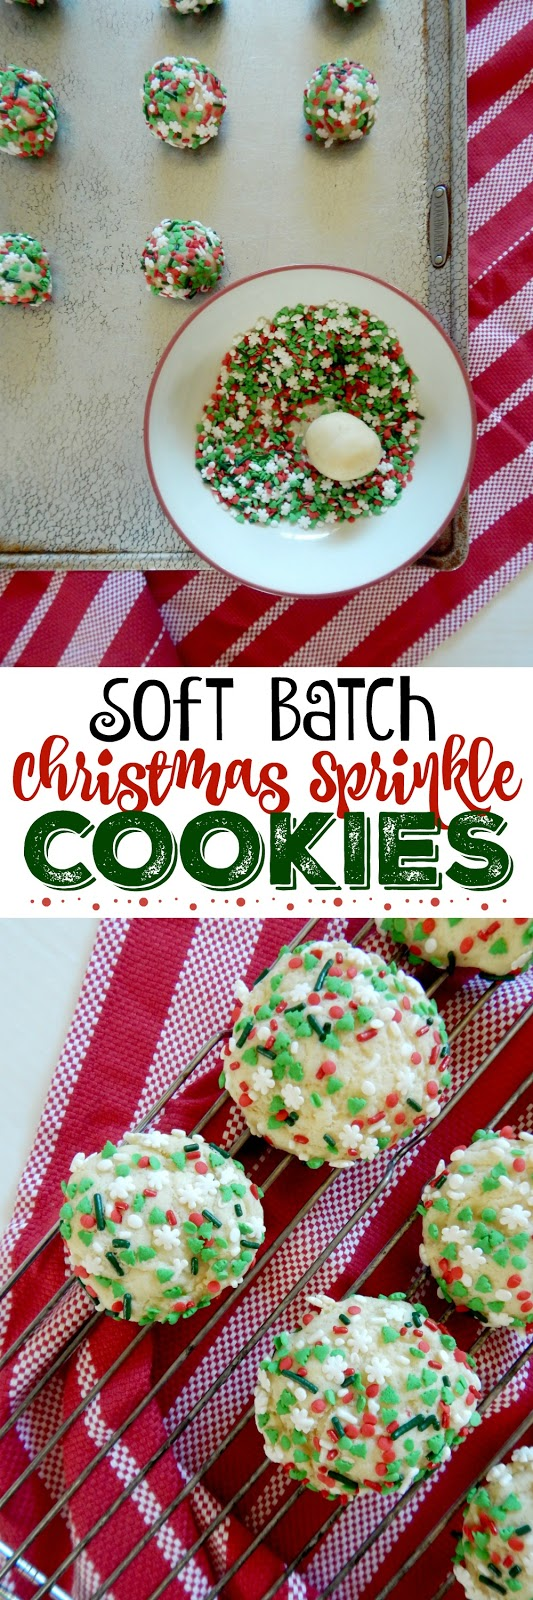 Soft Batch Christmas Sprinkle Cookies....a soft, tender, almond flavored sugar cookie coated in holiday sprinkles!  A kid favorite! Perfect for Santa and all your holiday gatherings. (sweetandsavoryfood.com)